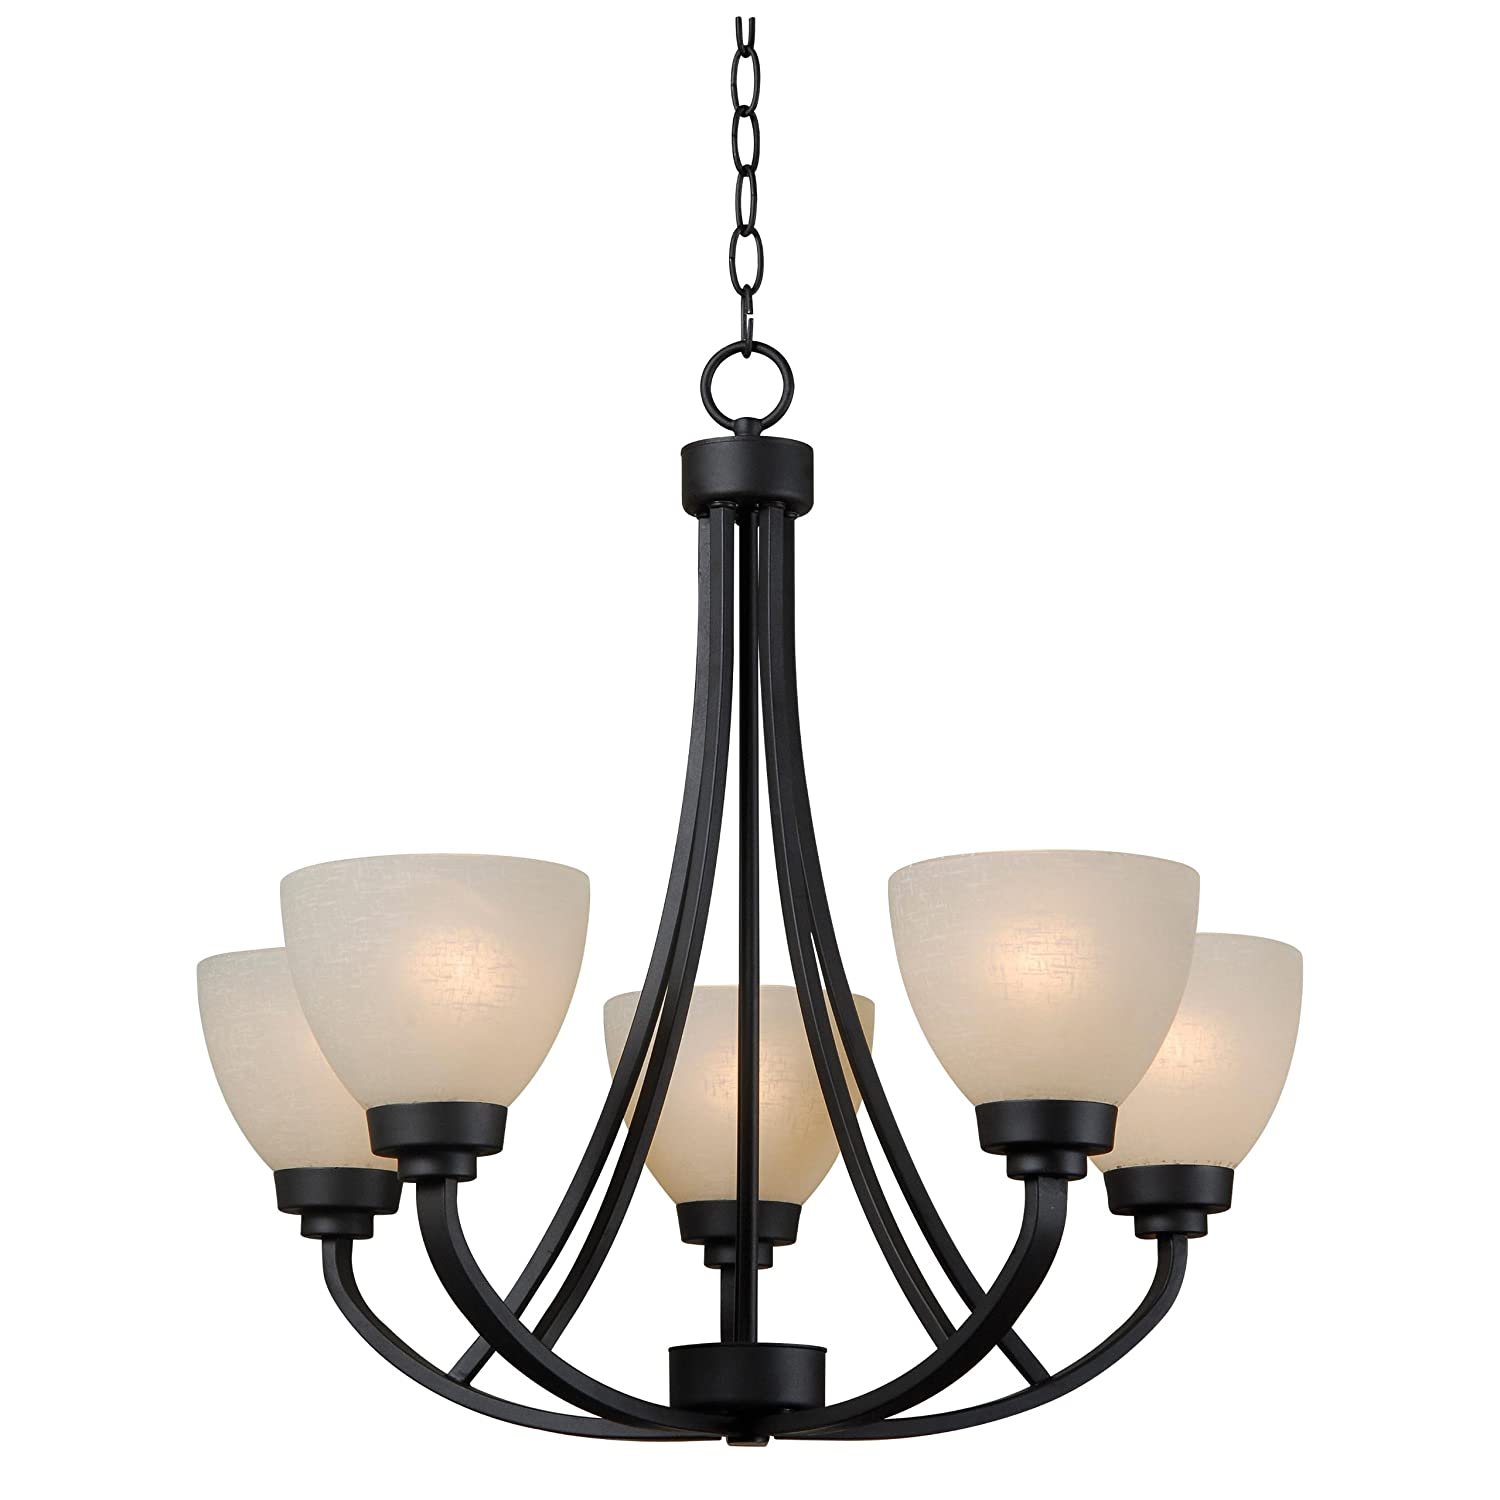 Kenroy home 93195bbz dynasty 5 light chandelier with burnished kenroy home 93195bbz dynasty 5 light chandelier with burnished bronze finish amazon mozeypictures Images